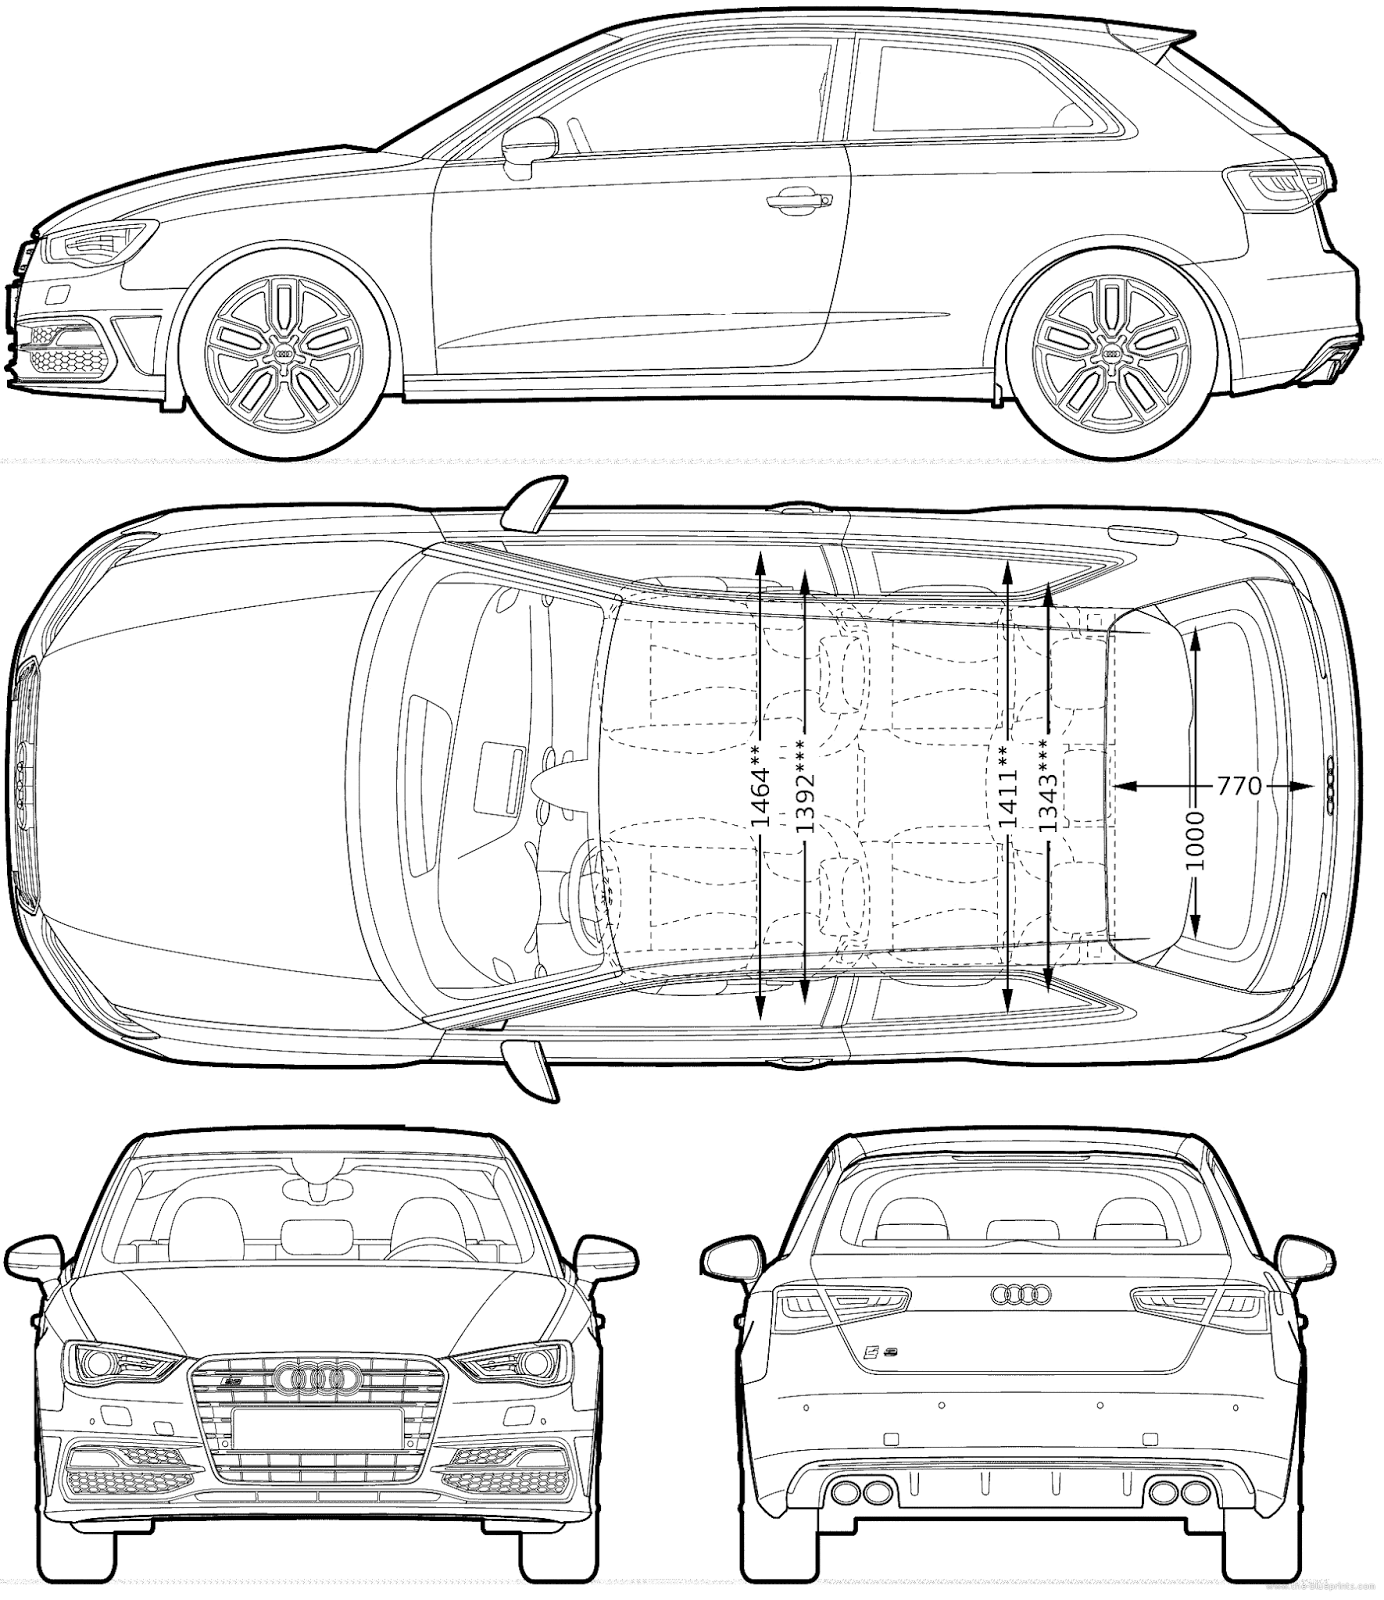 Cgfrog most loved car blueprints for 3d modeling for Blueprint builder free